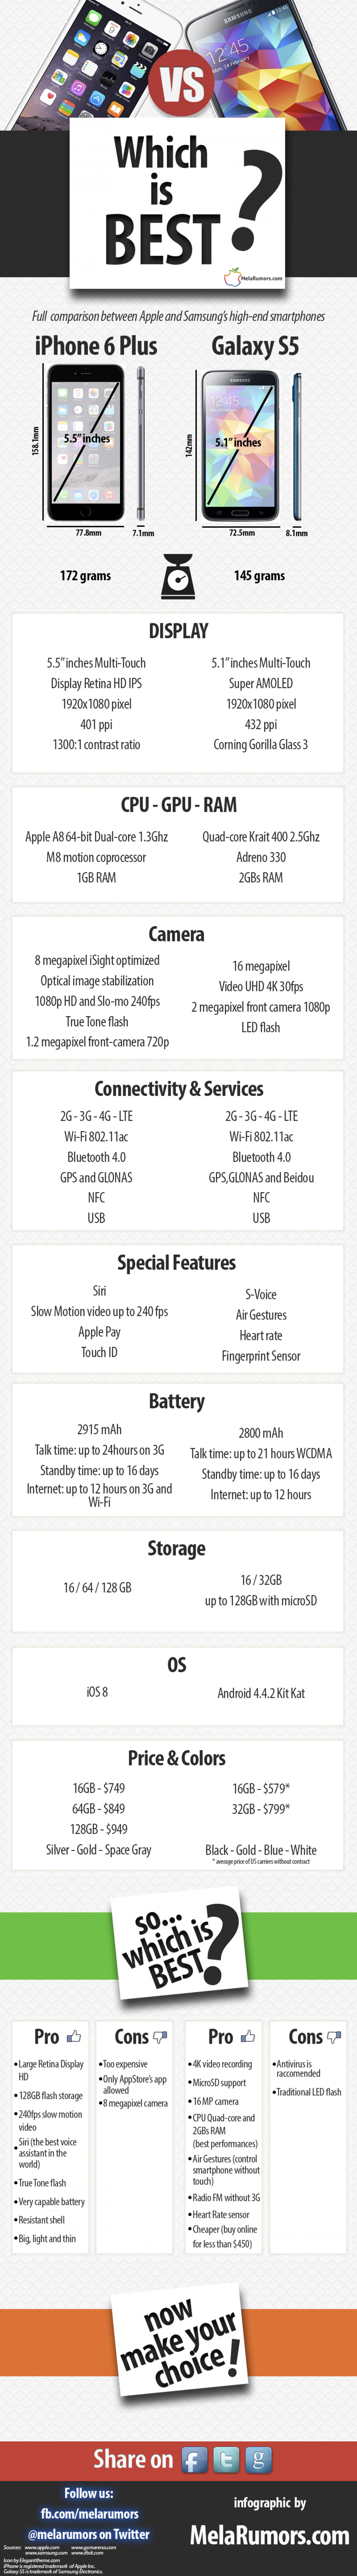 iPhone 6 Plus VS Galaxy S5 - Which is BEST? Infographic